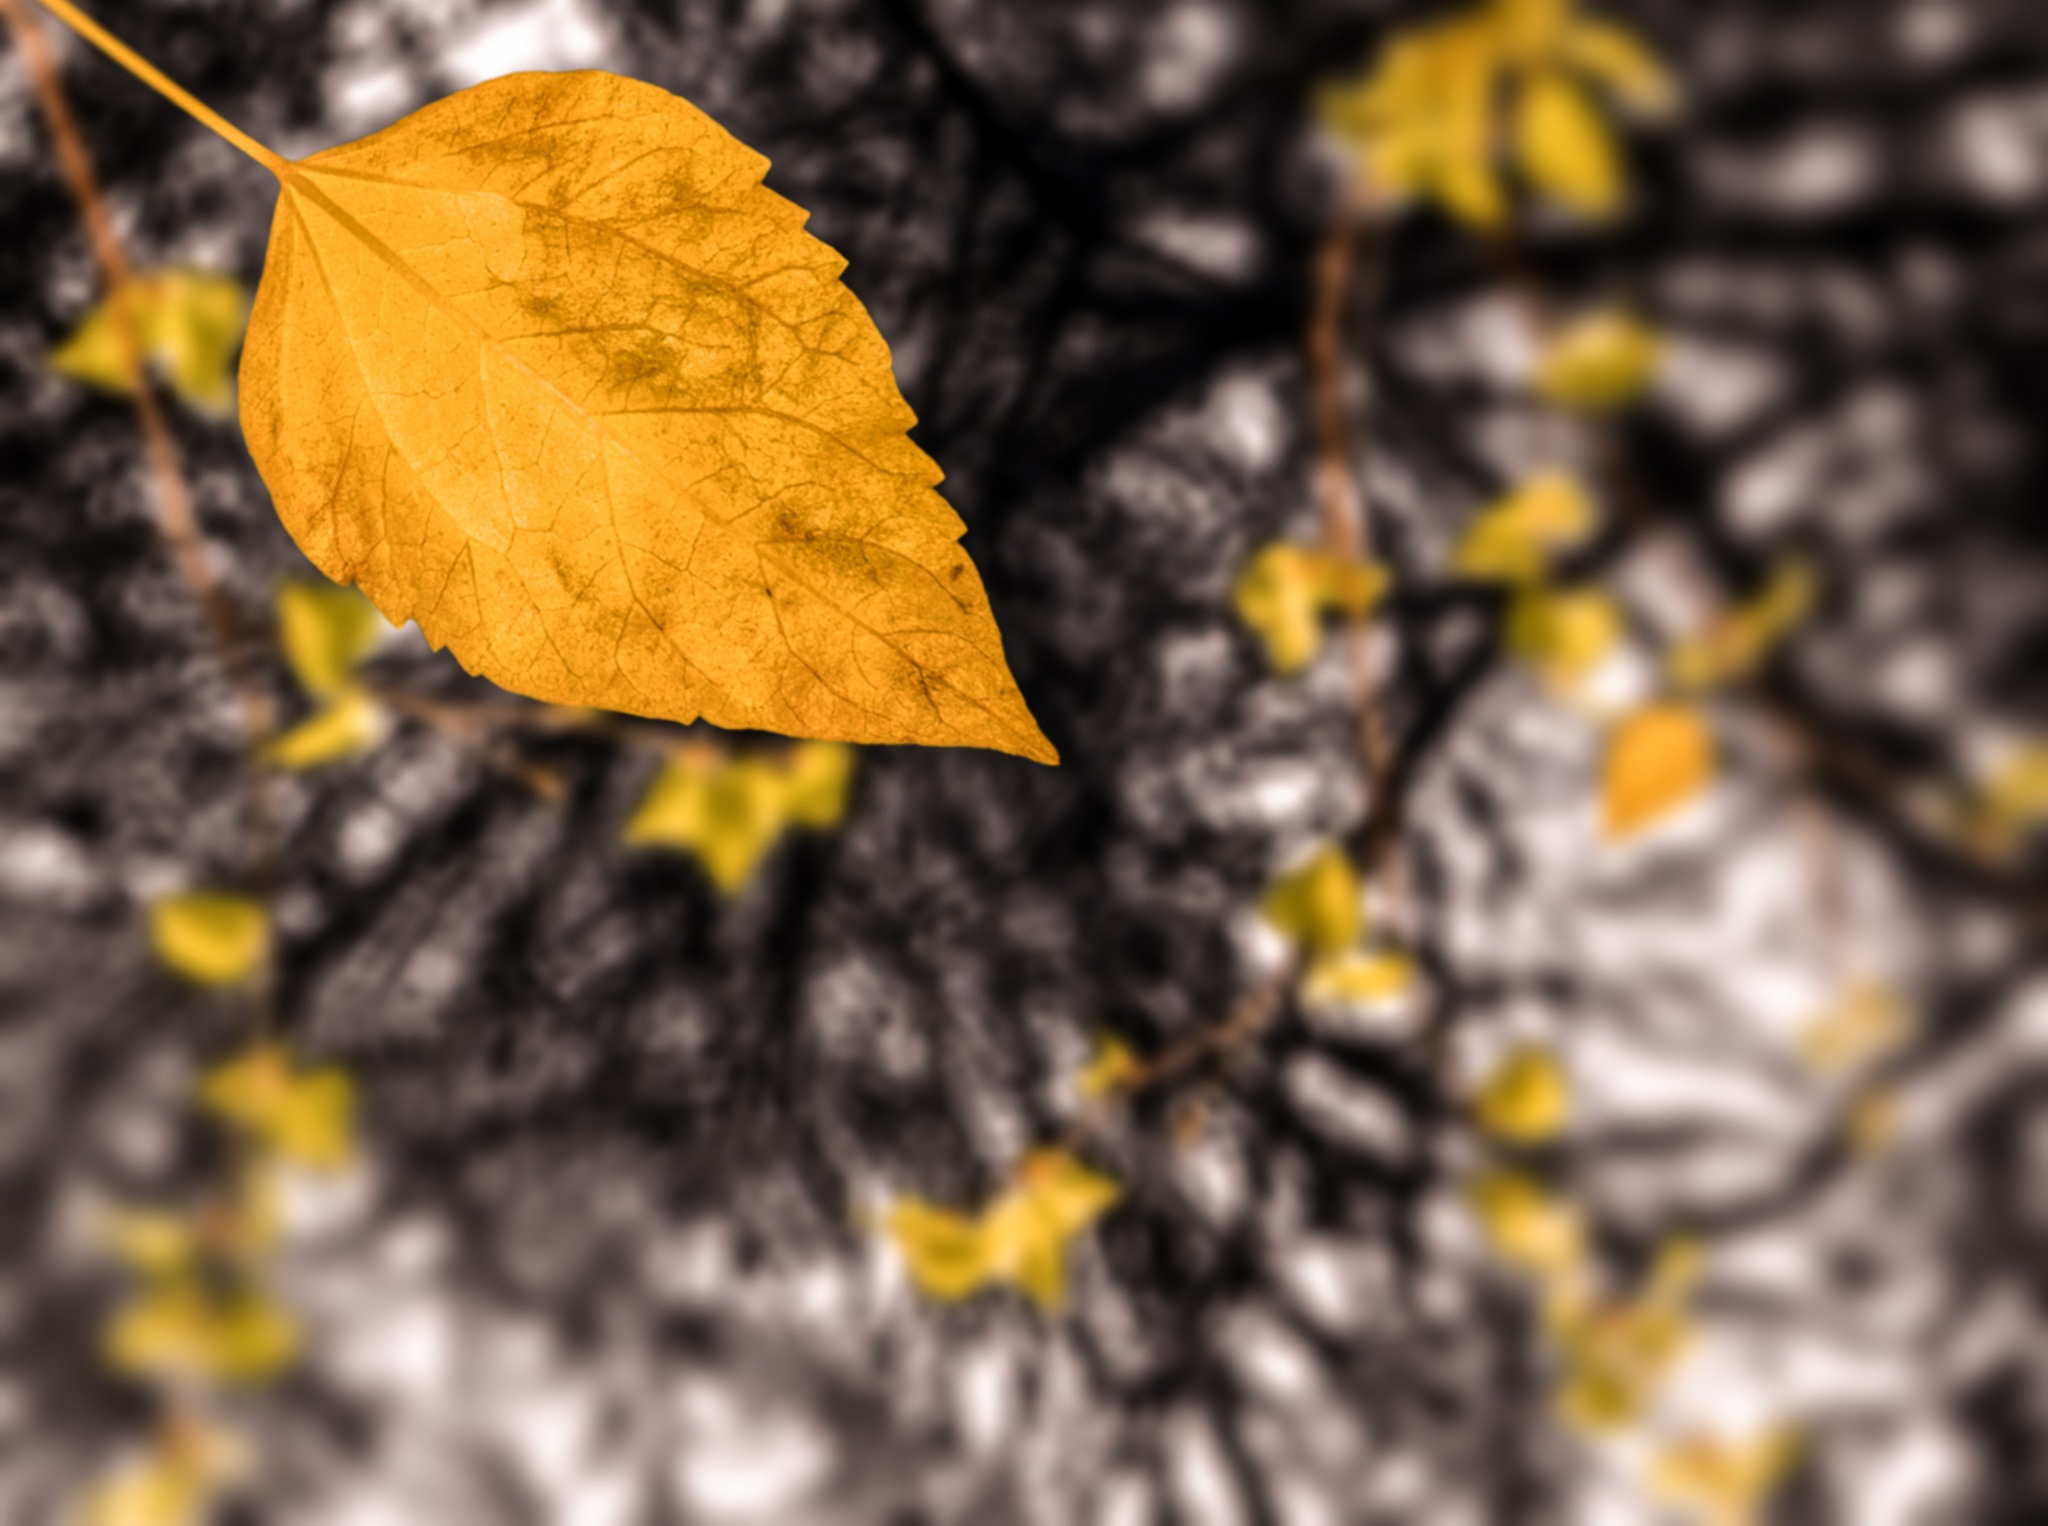 Autumn Leaves by Mohamed Sayed Aouf